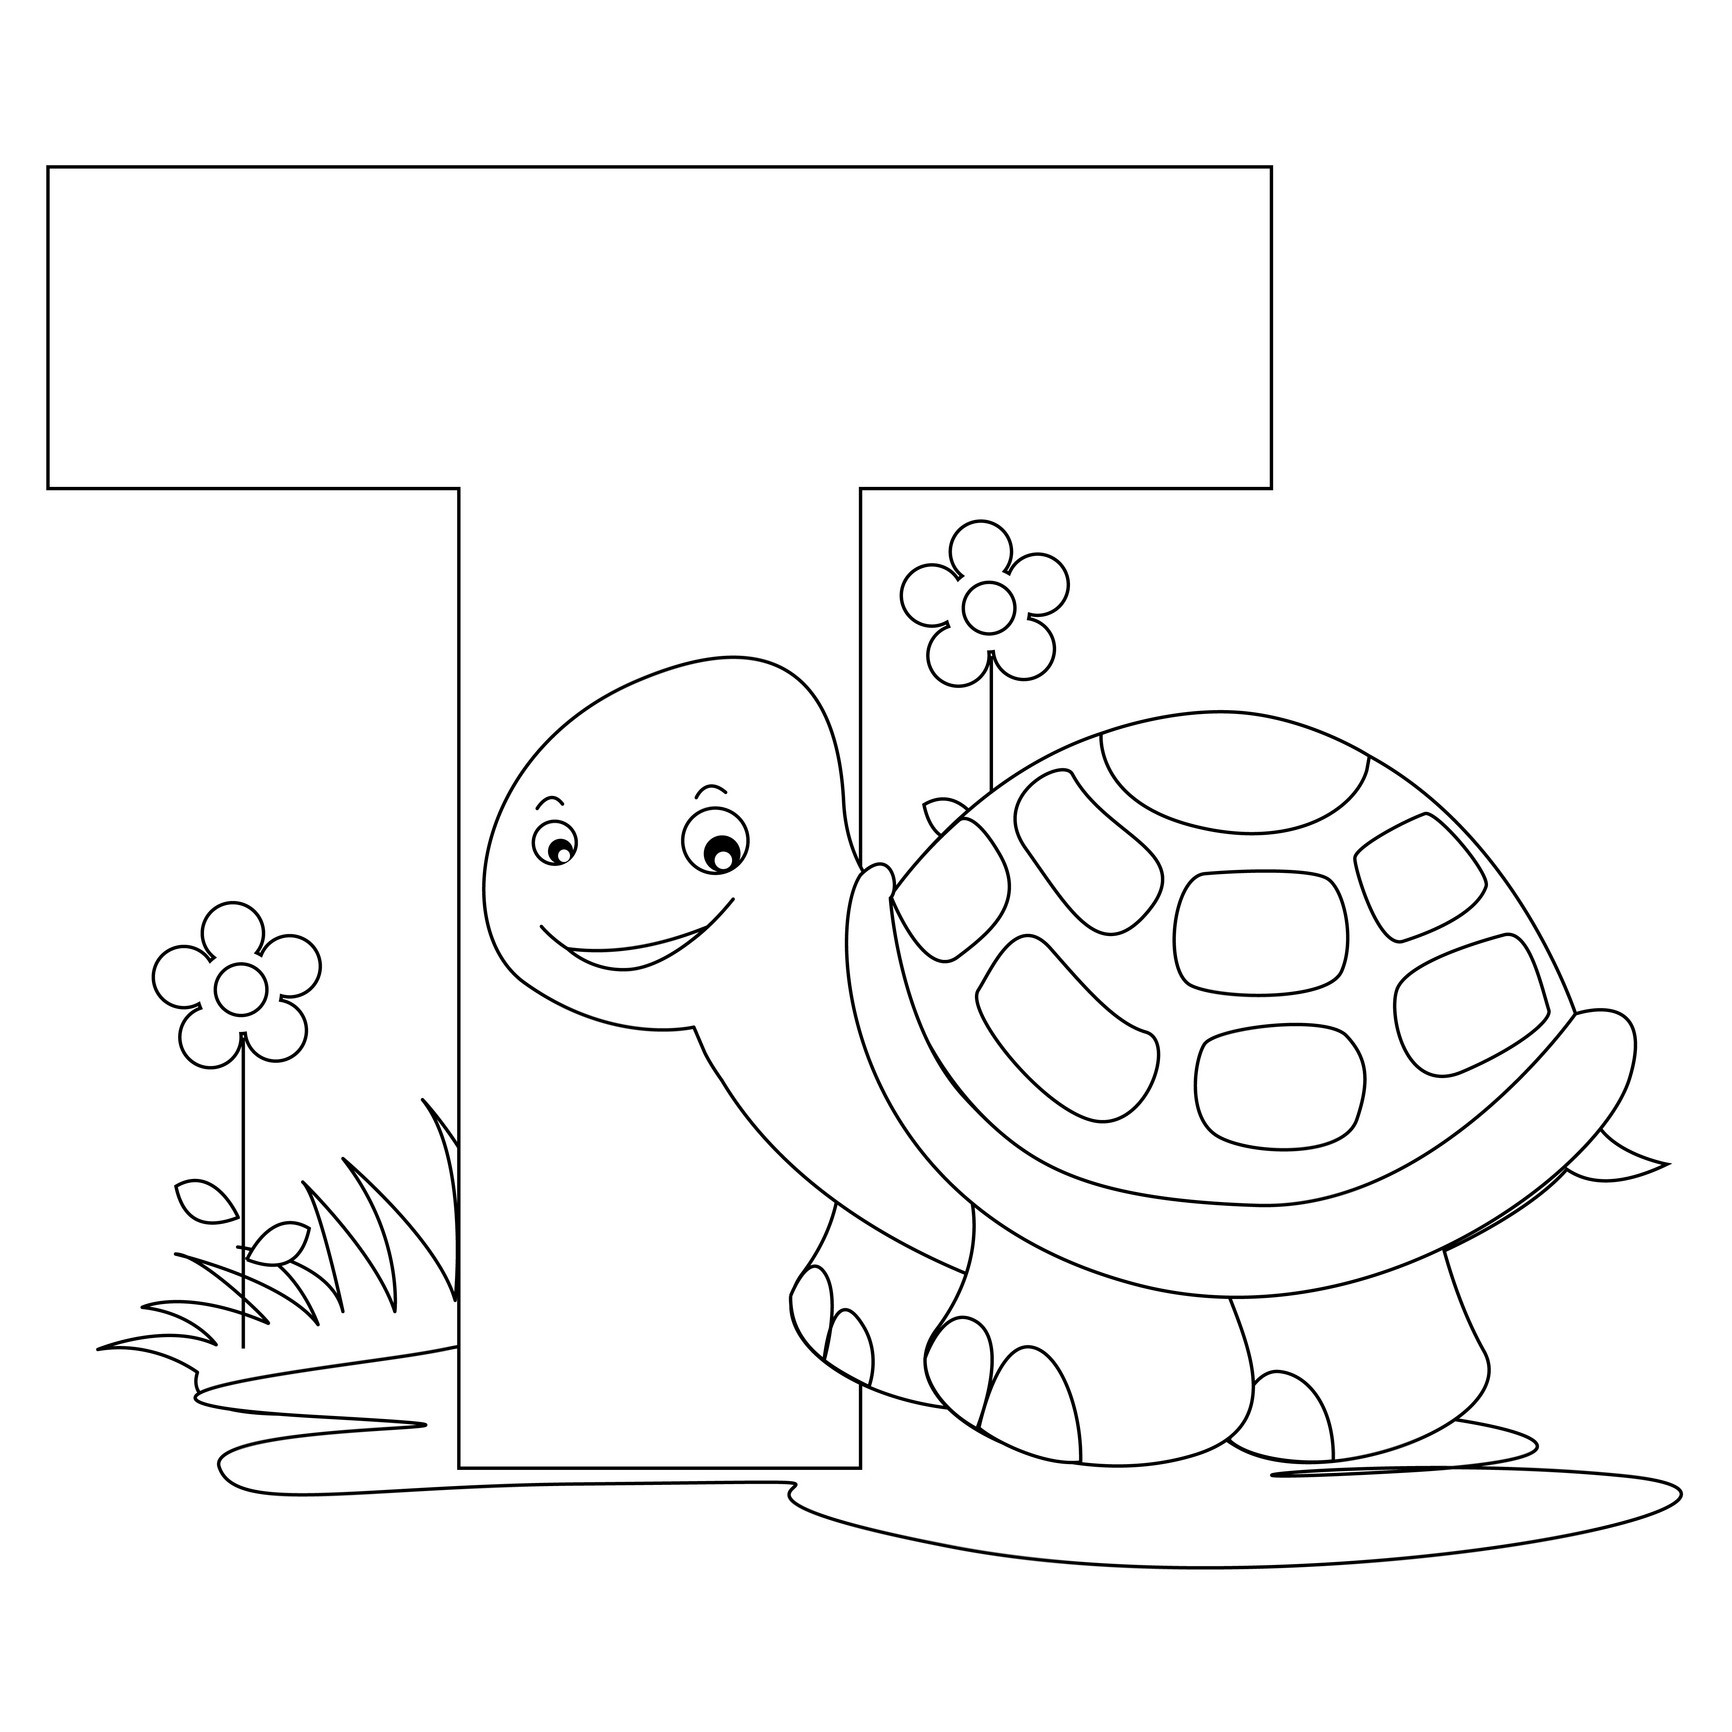 Free printable alphabet coloring pages for kids best for Letter c color page